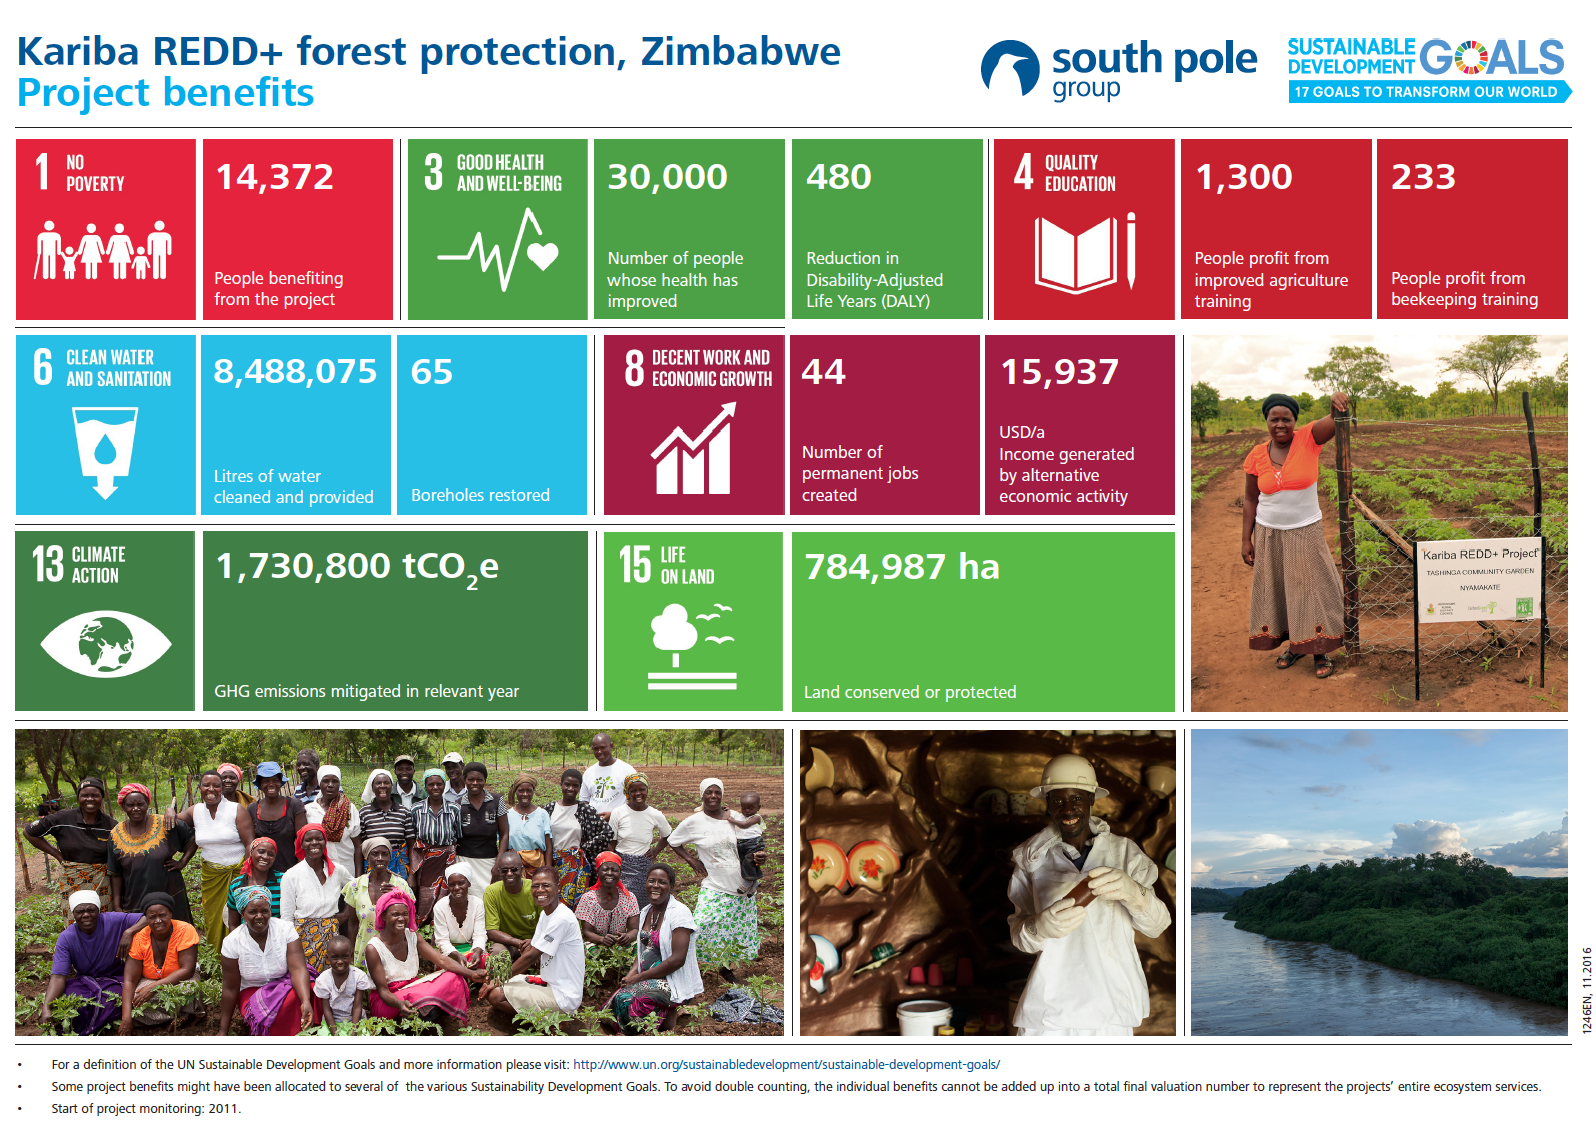 Kariba REDD+ forest protection, Zimbabwe: Project Benefits